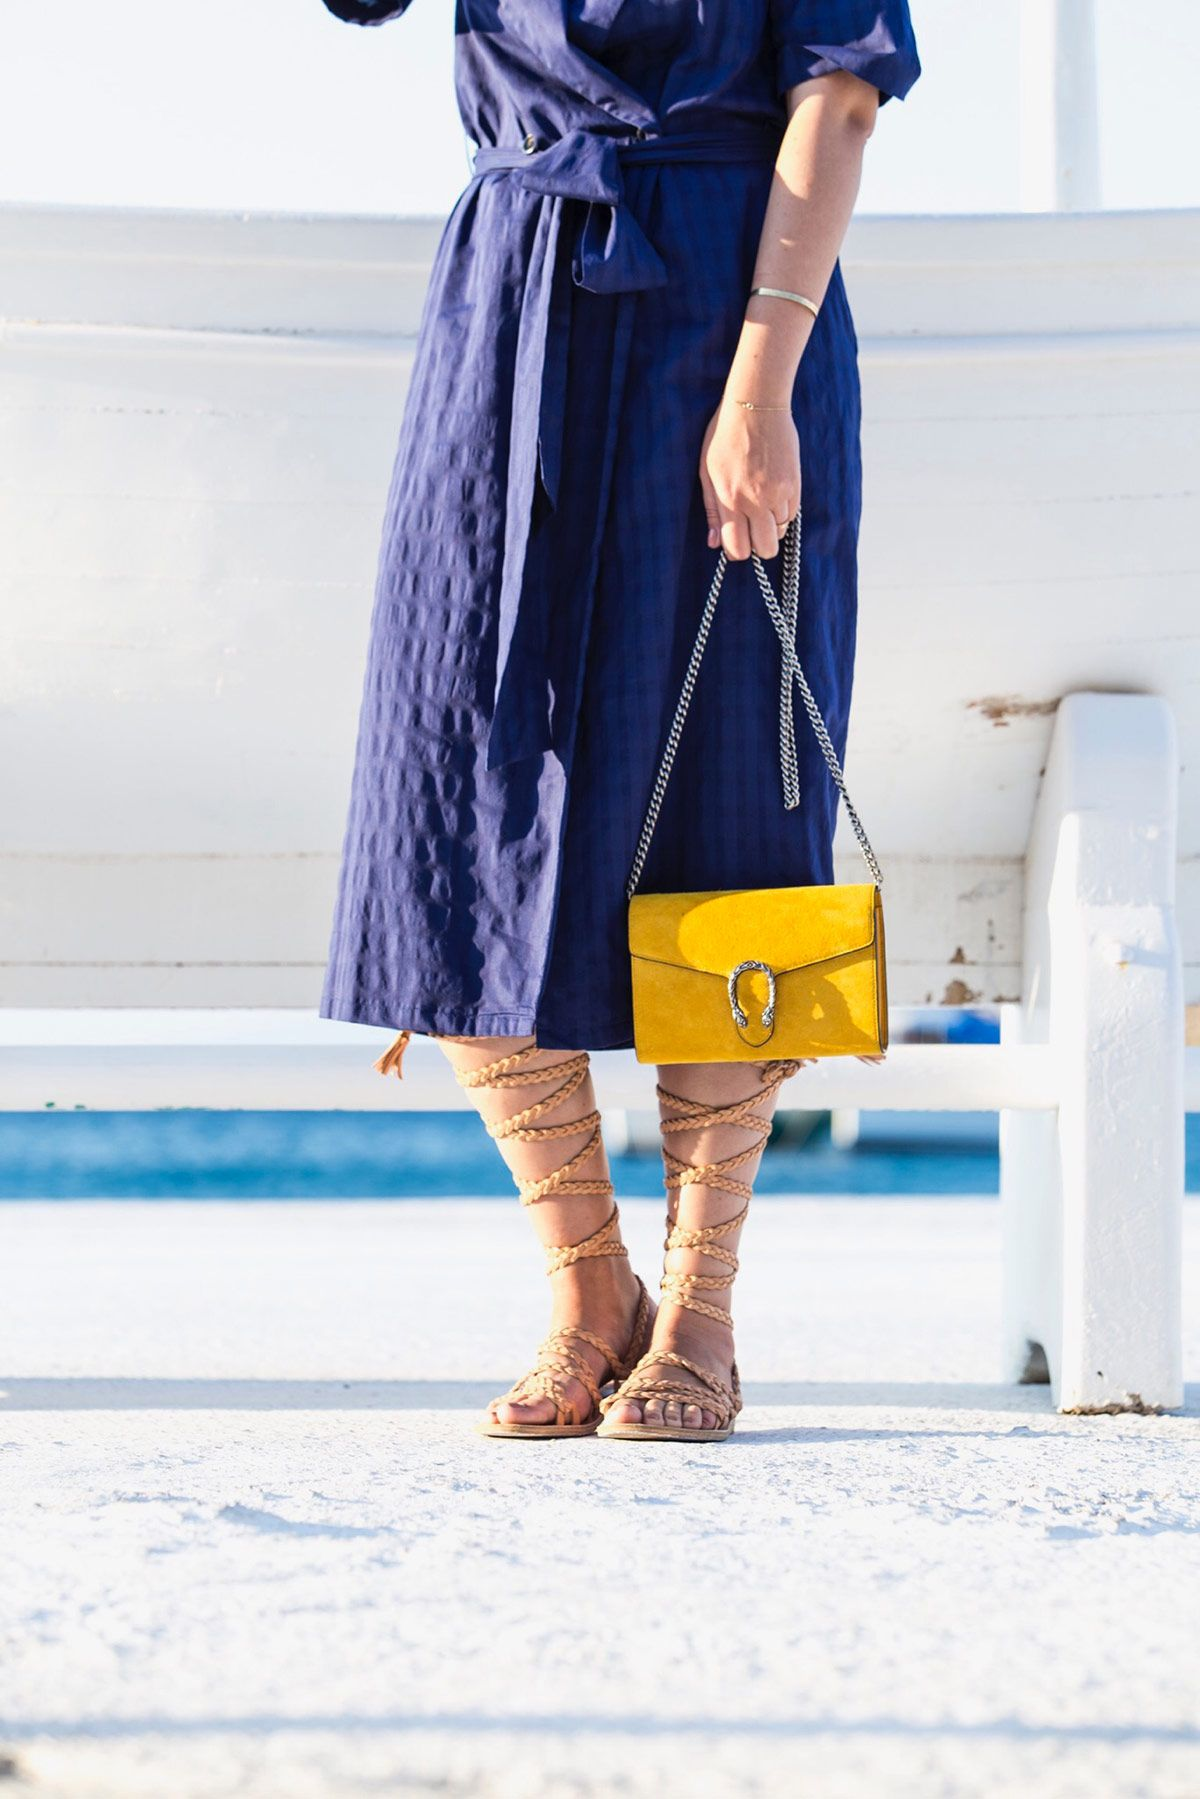 yellow Gucci Dionysus bag (chain wallet) and gladiator sandals by Stella Asteria | Fashion